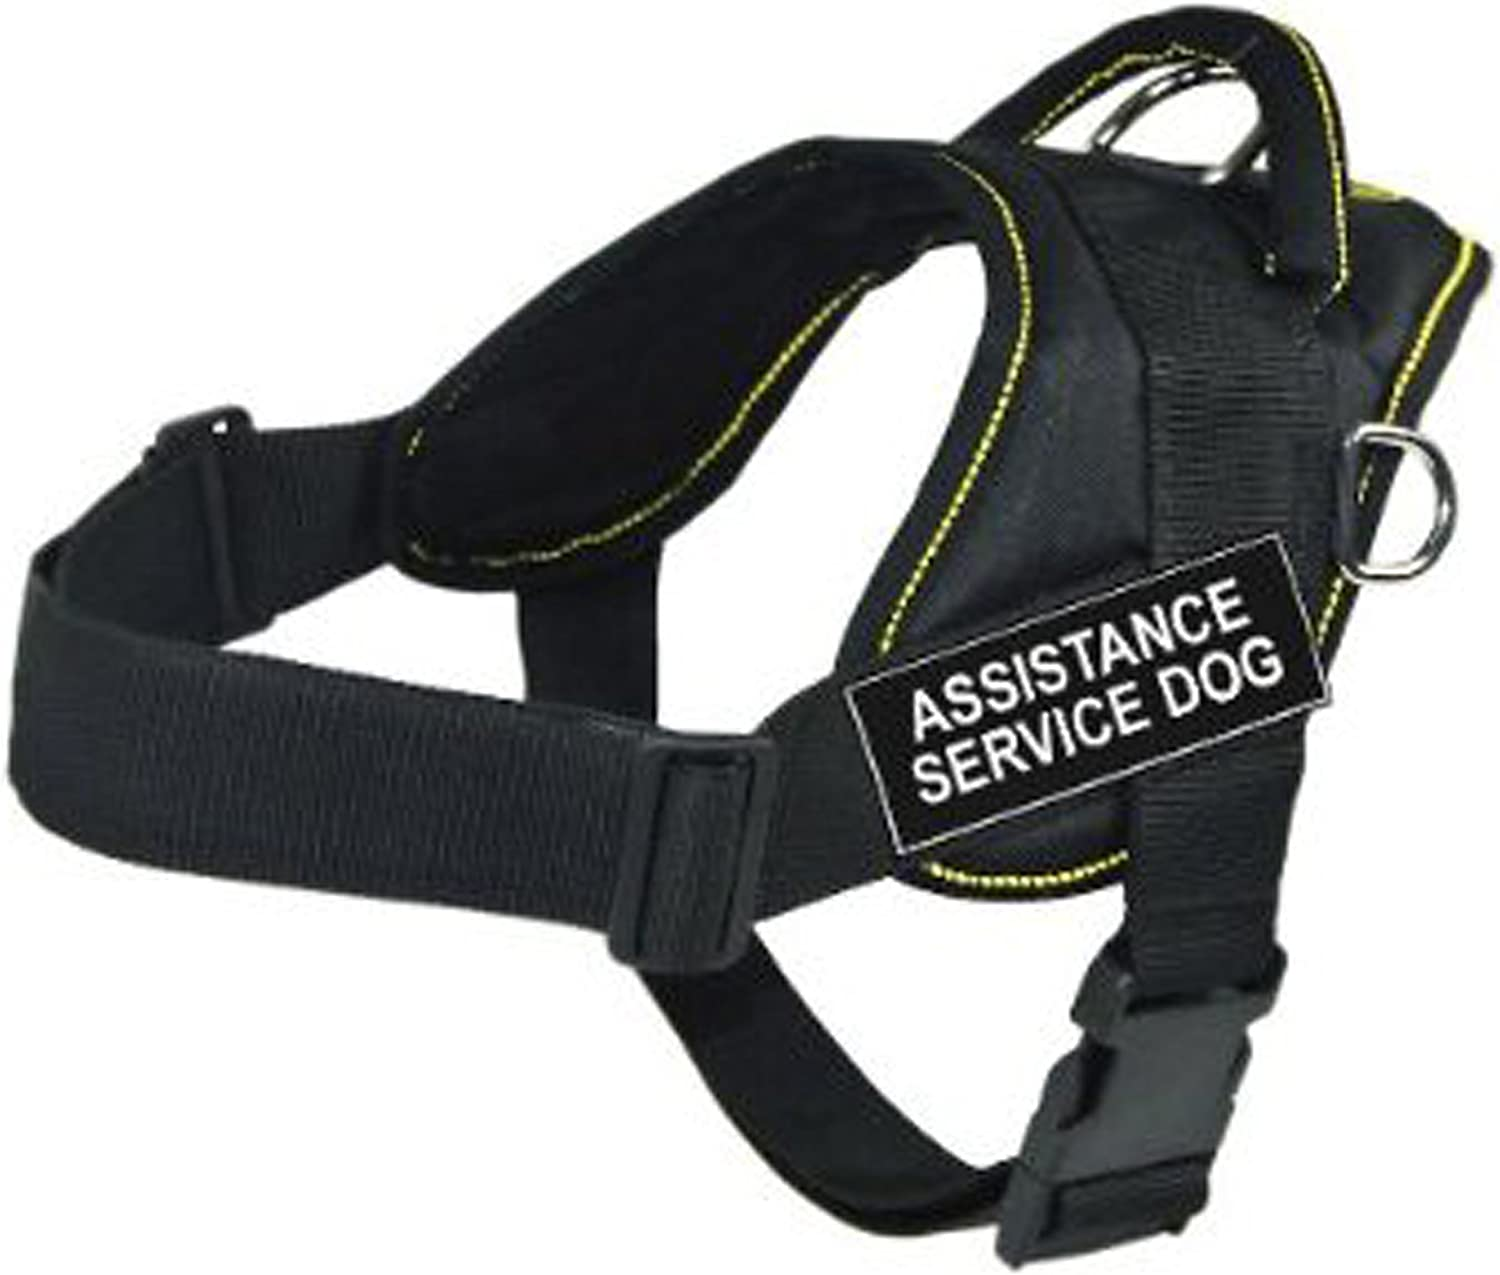 Dean & Tyler DT Fun Works Harness, Assistance Service Dog, Black With Yellow Trim, XLarge  Fits Girth Size  34Inch to 47Inch